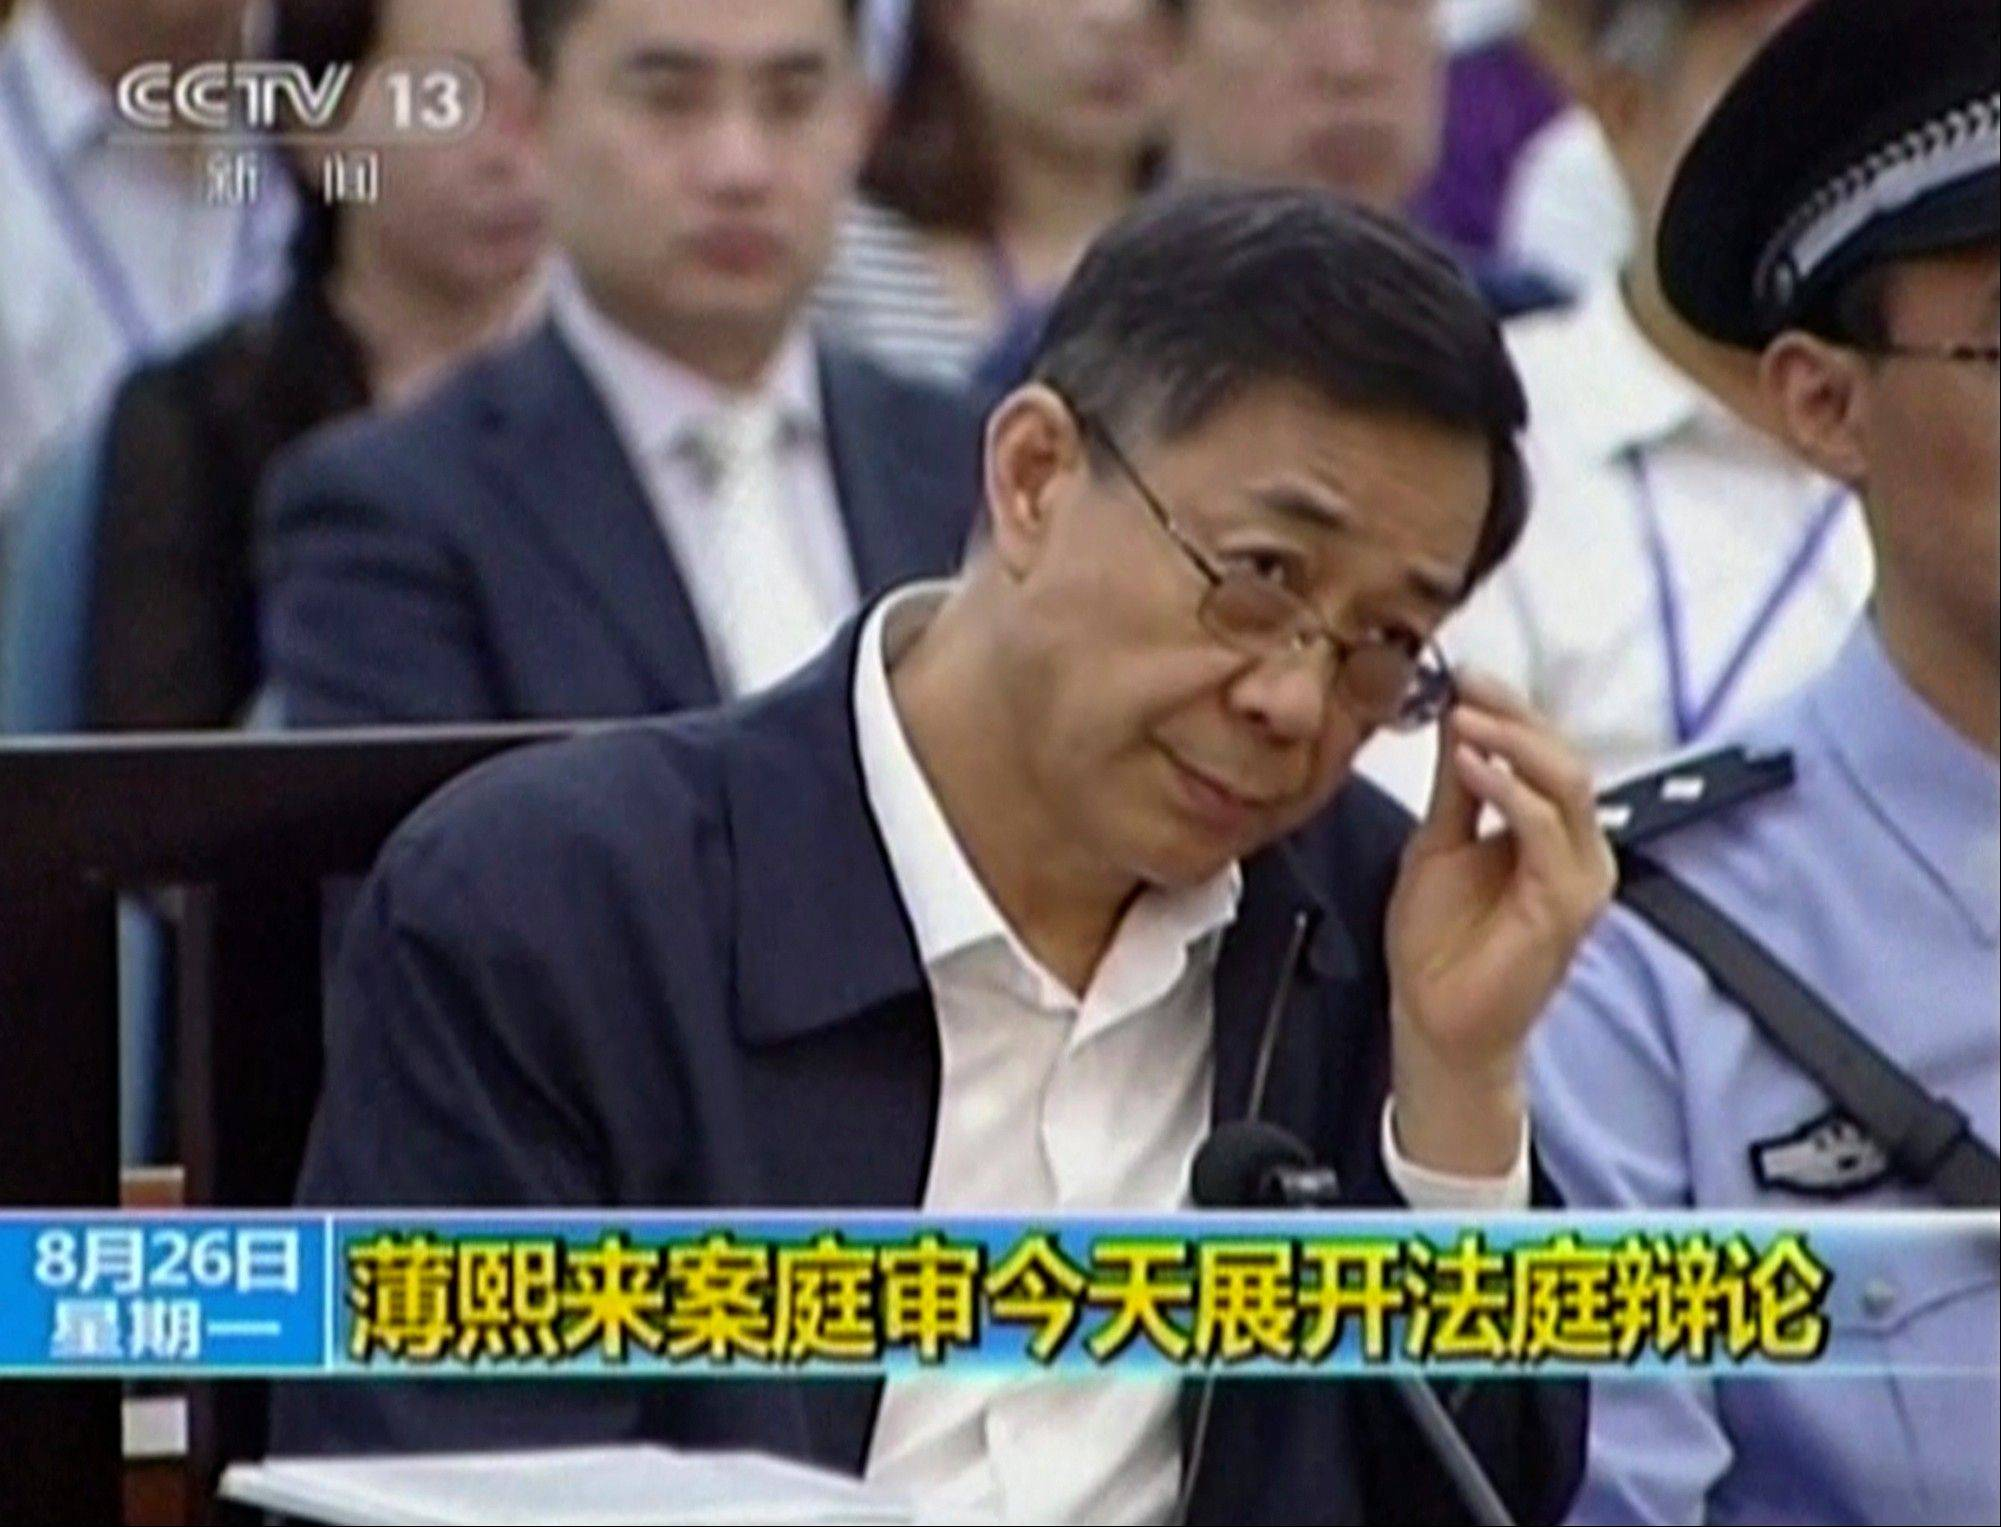 In this image taken from video, former Chinese politician Bo Xilai looks up in a courtroom at Jinan Intermediate People�s Court in Jinan, eastern China�s Shandong province, Monday. A prosecutor urged a Chinese court Monday to punish disgraced politician Bo with a severe sentence because of his lack of remorse over alleged corruption and abuse of power, in a trial that has offered a glimpse into the shady inner workings of China�s elite.